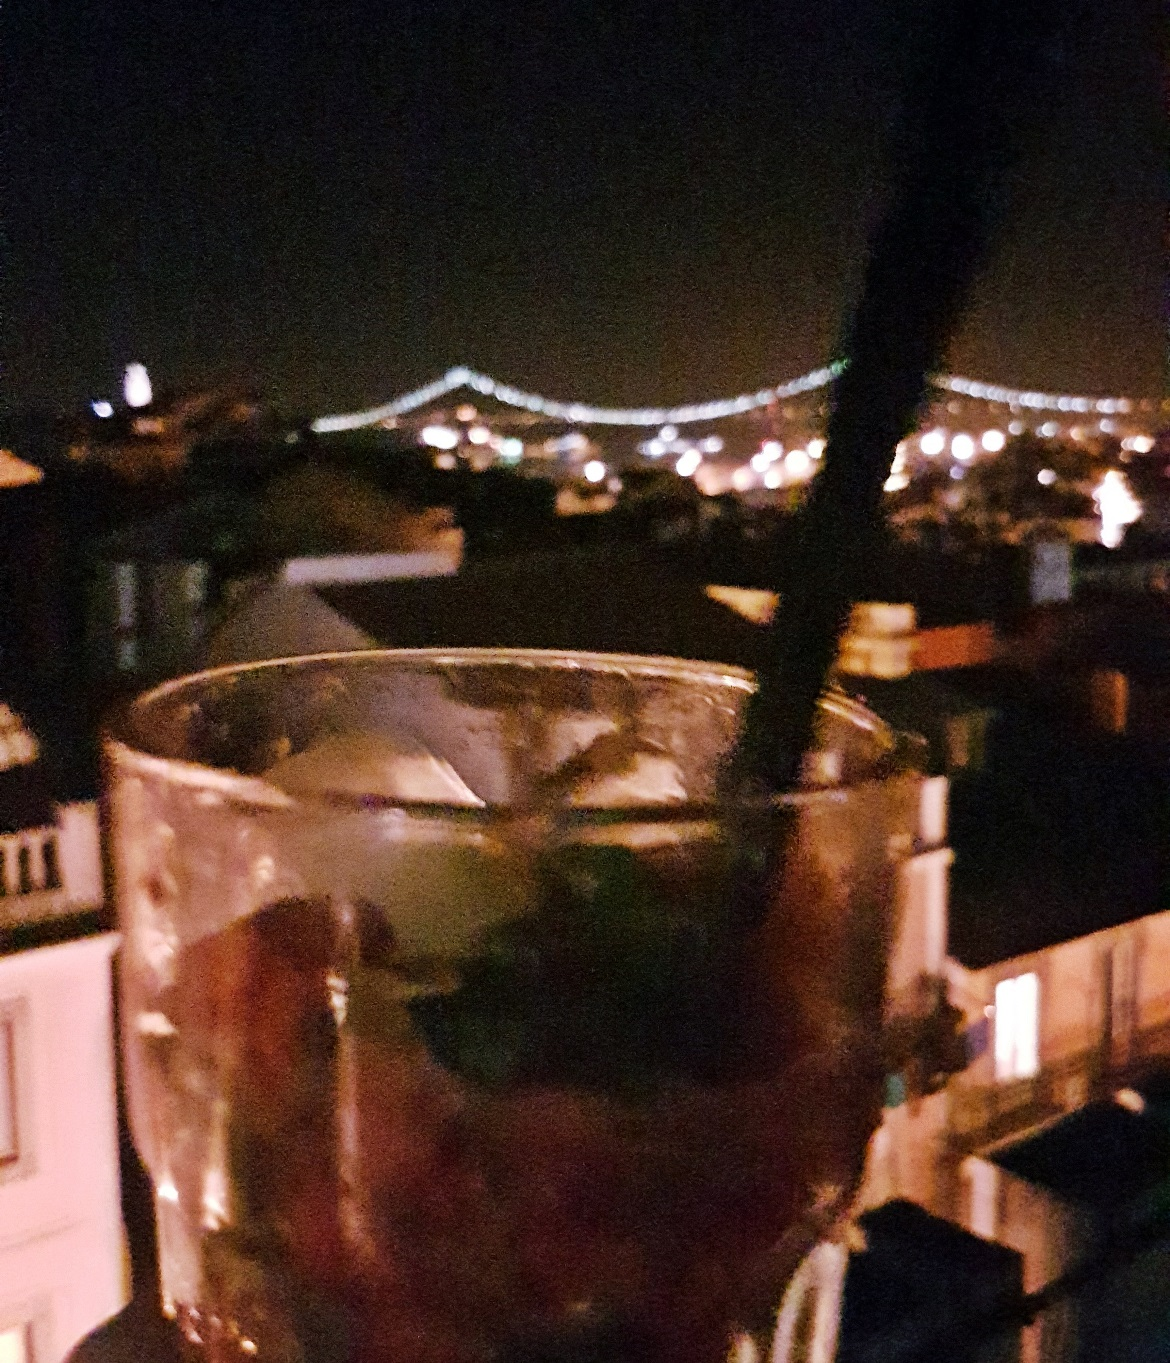 Drink with a view at Park Bar - Food and Drink in Lisbon, review by BeckyBecky Blogs